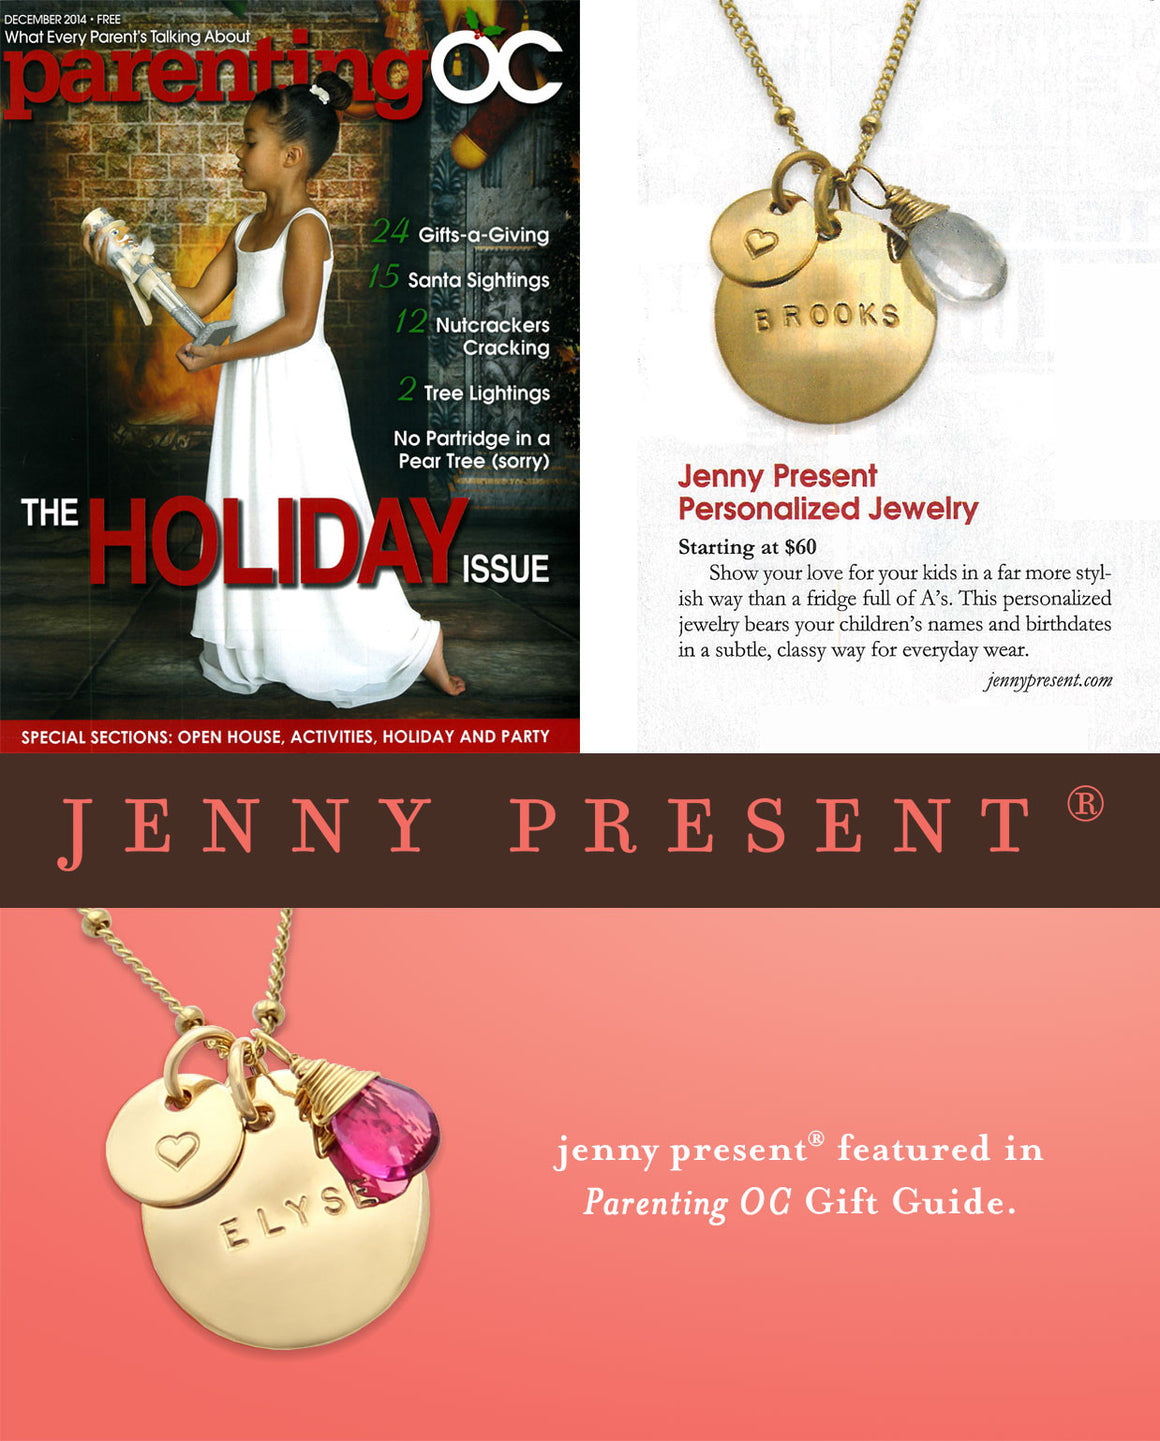 Gold Hand Stamped Necklace with Gemstone, Personalized Jewelry, Proud Mama®, jenny present® as seen in Parenting OC Holiday Gift Guide